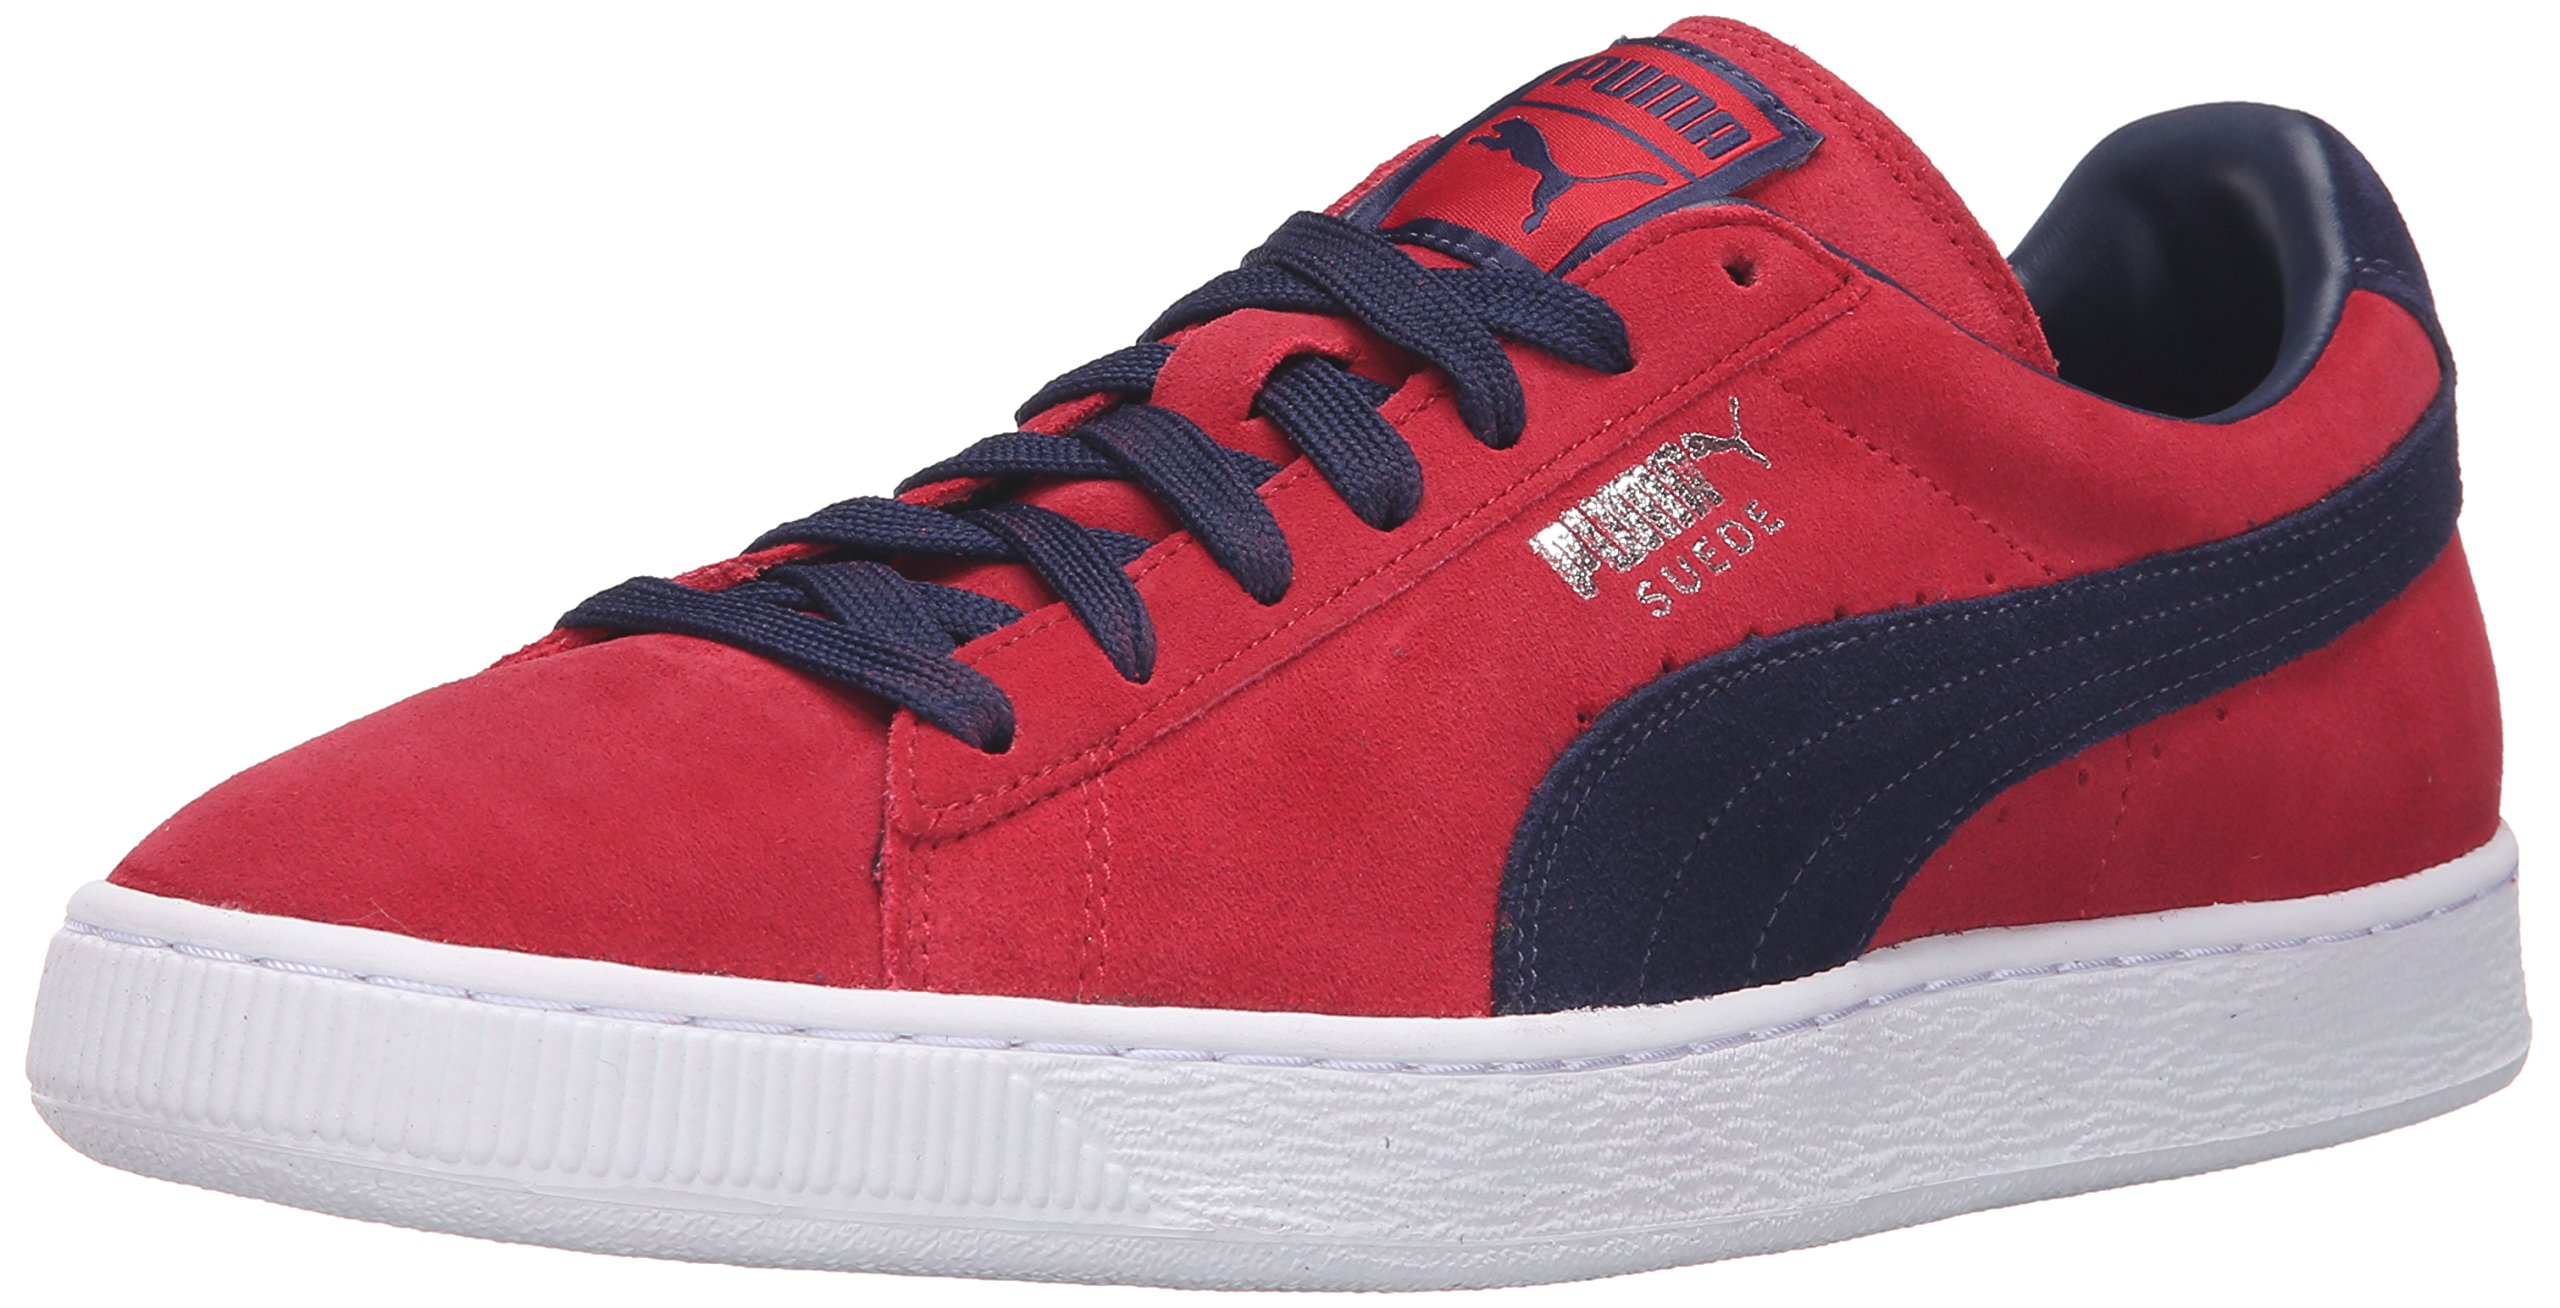 PUMA Men's Suede Classic+-M Fashion Sneaker, Barbados Cherry/Peacoat, 9 M US